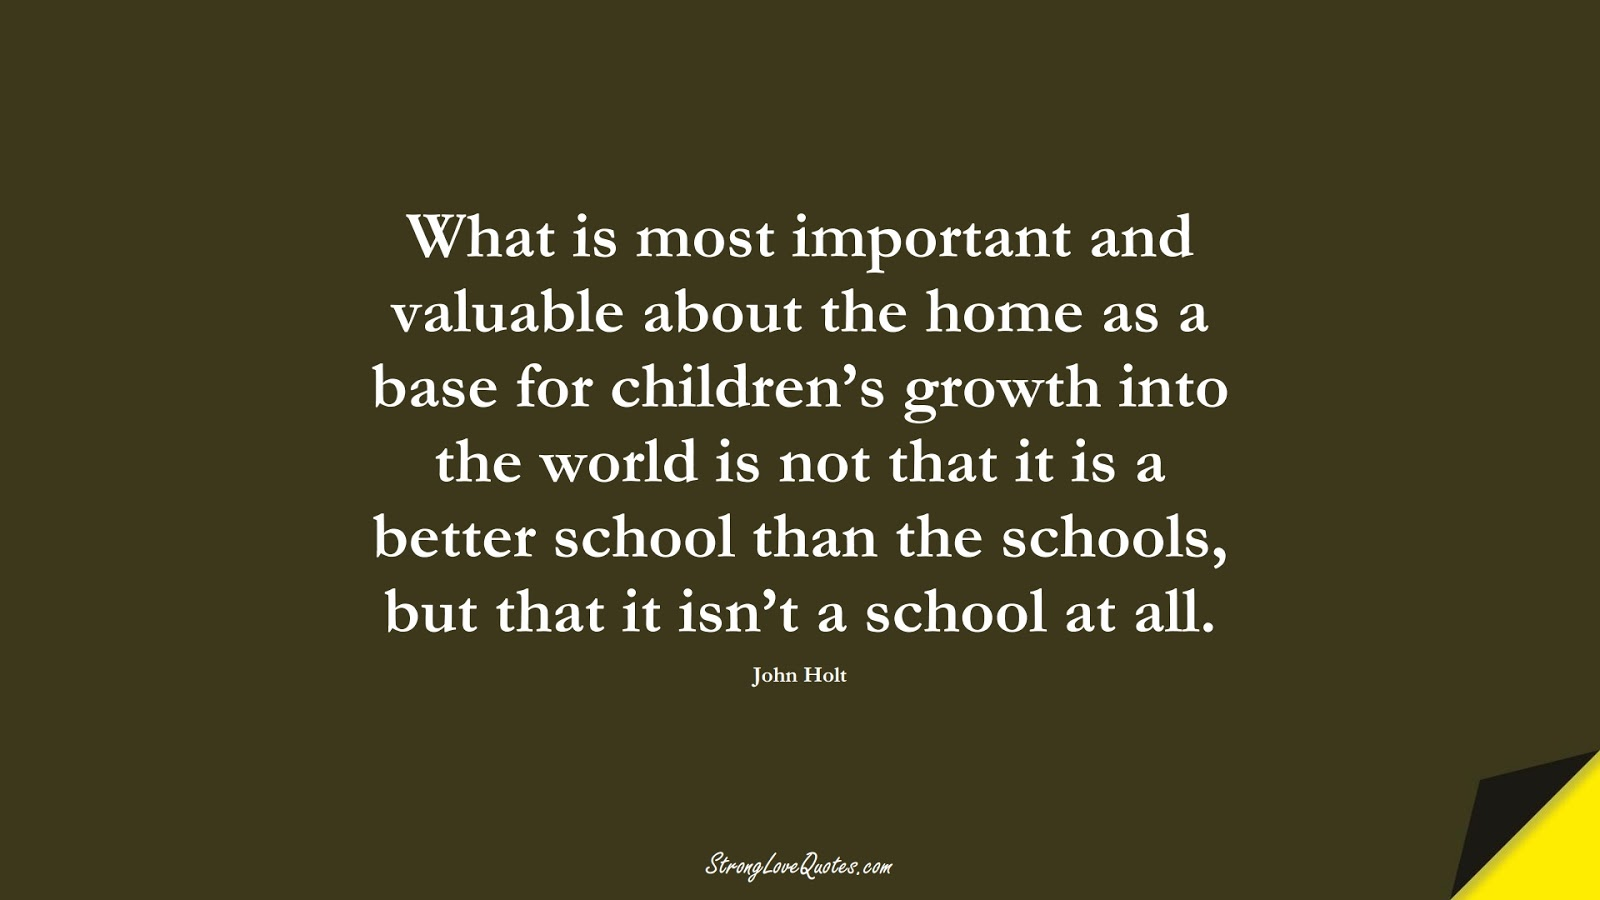 What is most important and valuable about the home as a base for children's growth into the world is not that it is a better school than the schools, but that it isn't a school at all. (John Holt);  #EducationQuotes